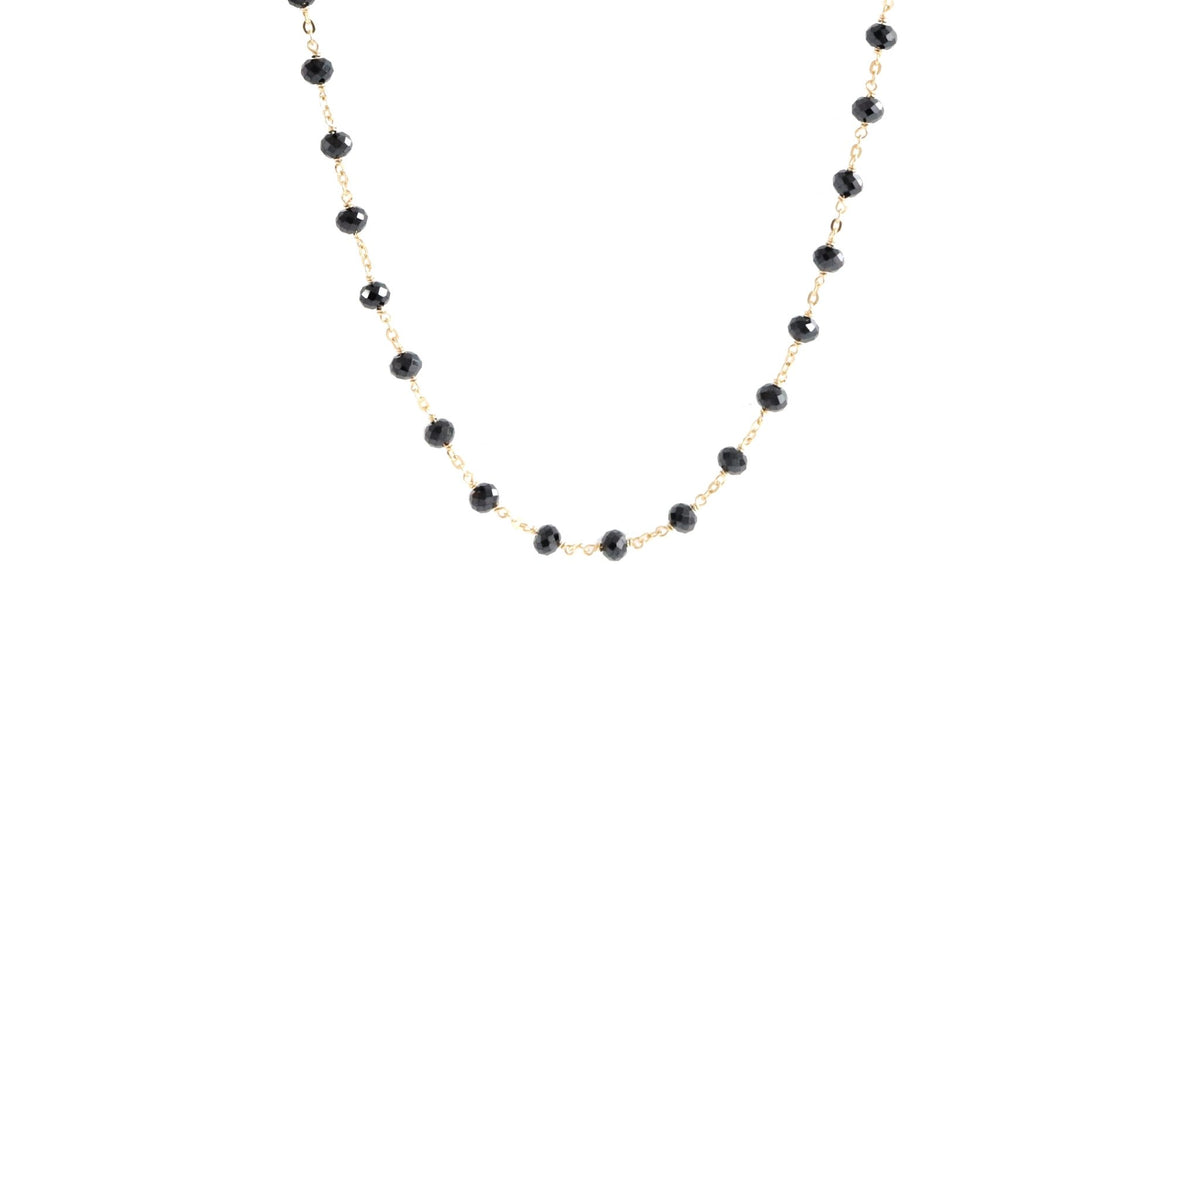 "ICONIC SHORT BEADED NECKLACE - BLACK ONYX & GOLD 16-20"" - SO PRETTY CARA COTTER"